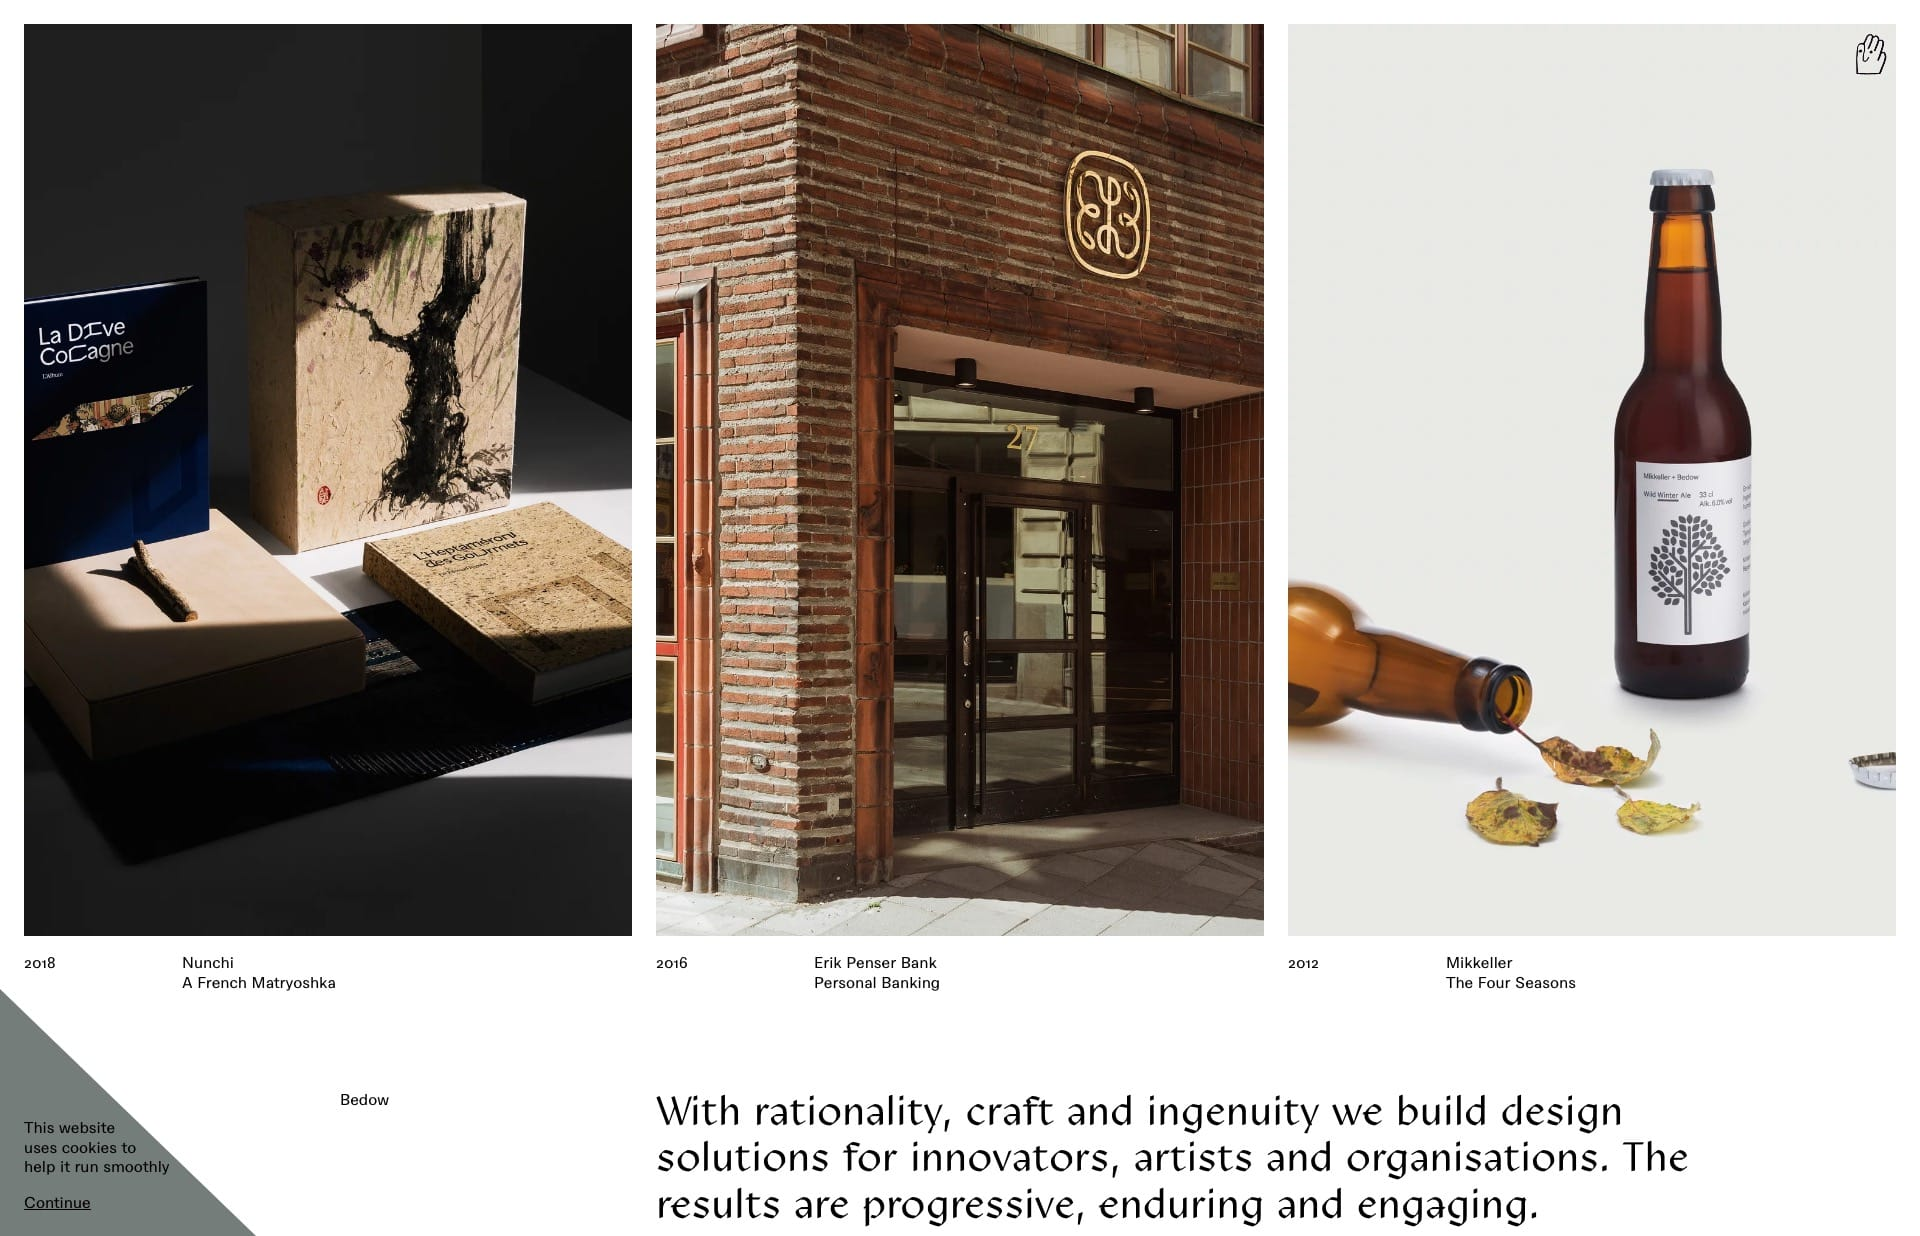 Screenshot of the website Bedow, featured on The Gallery, a curated collection of minimal websites